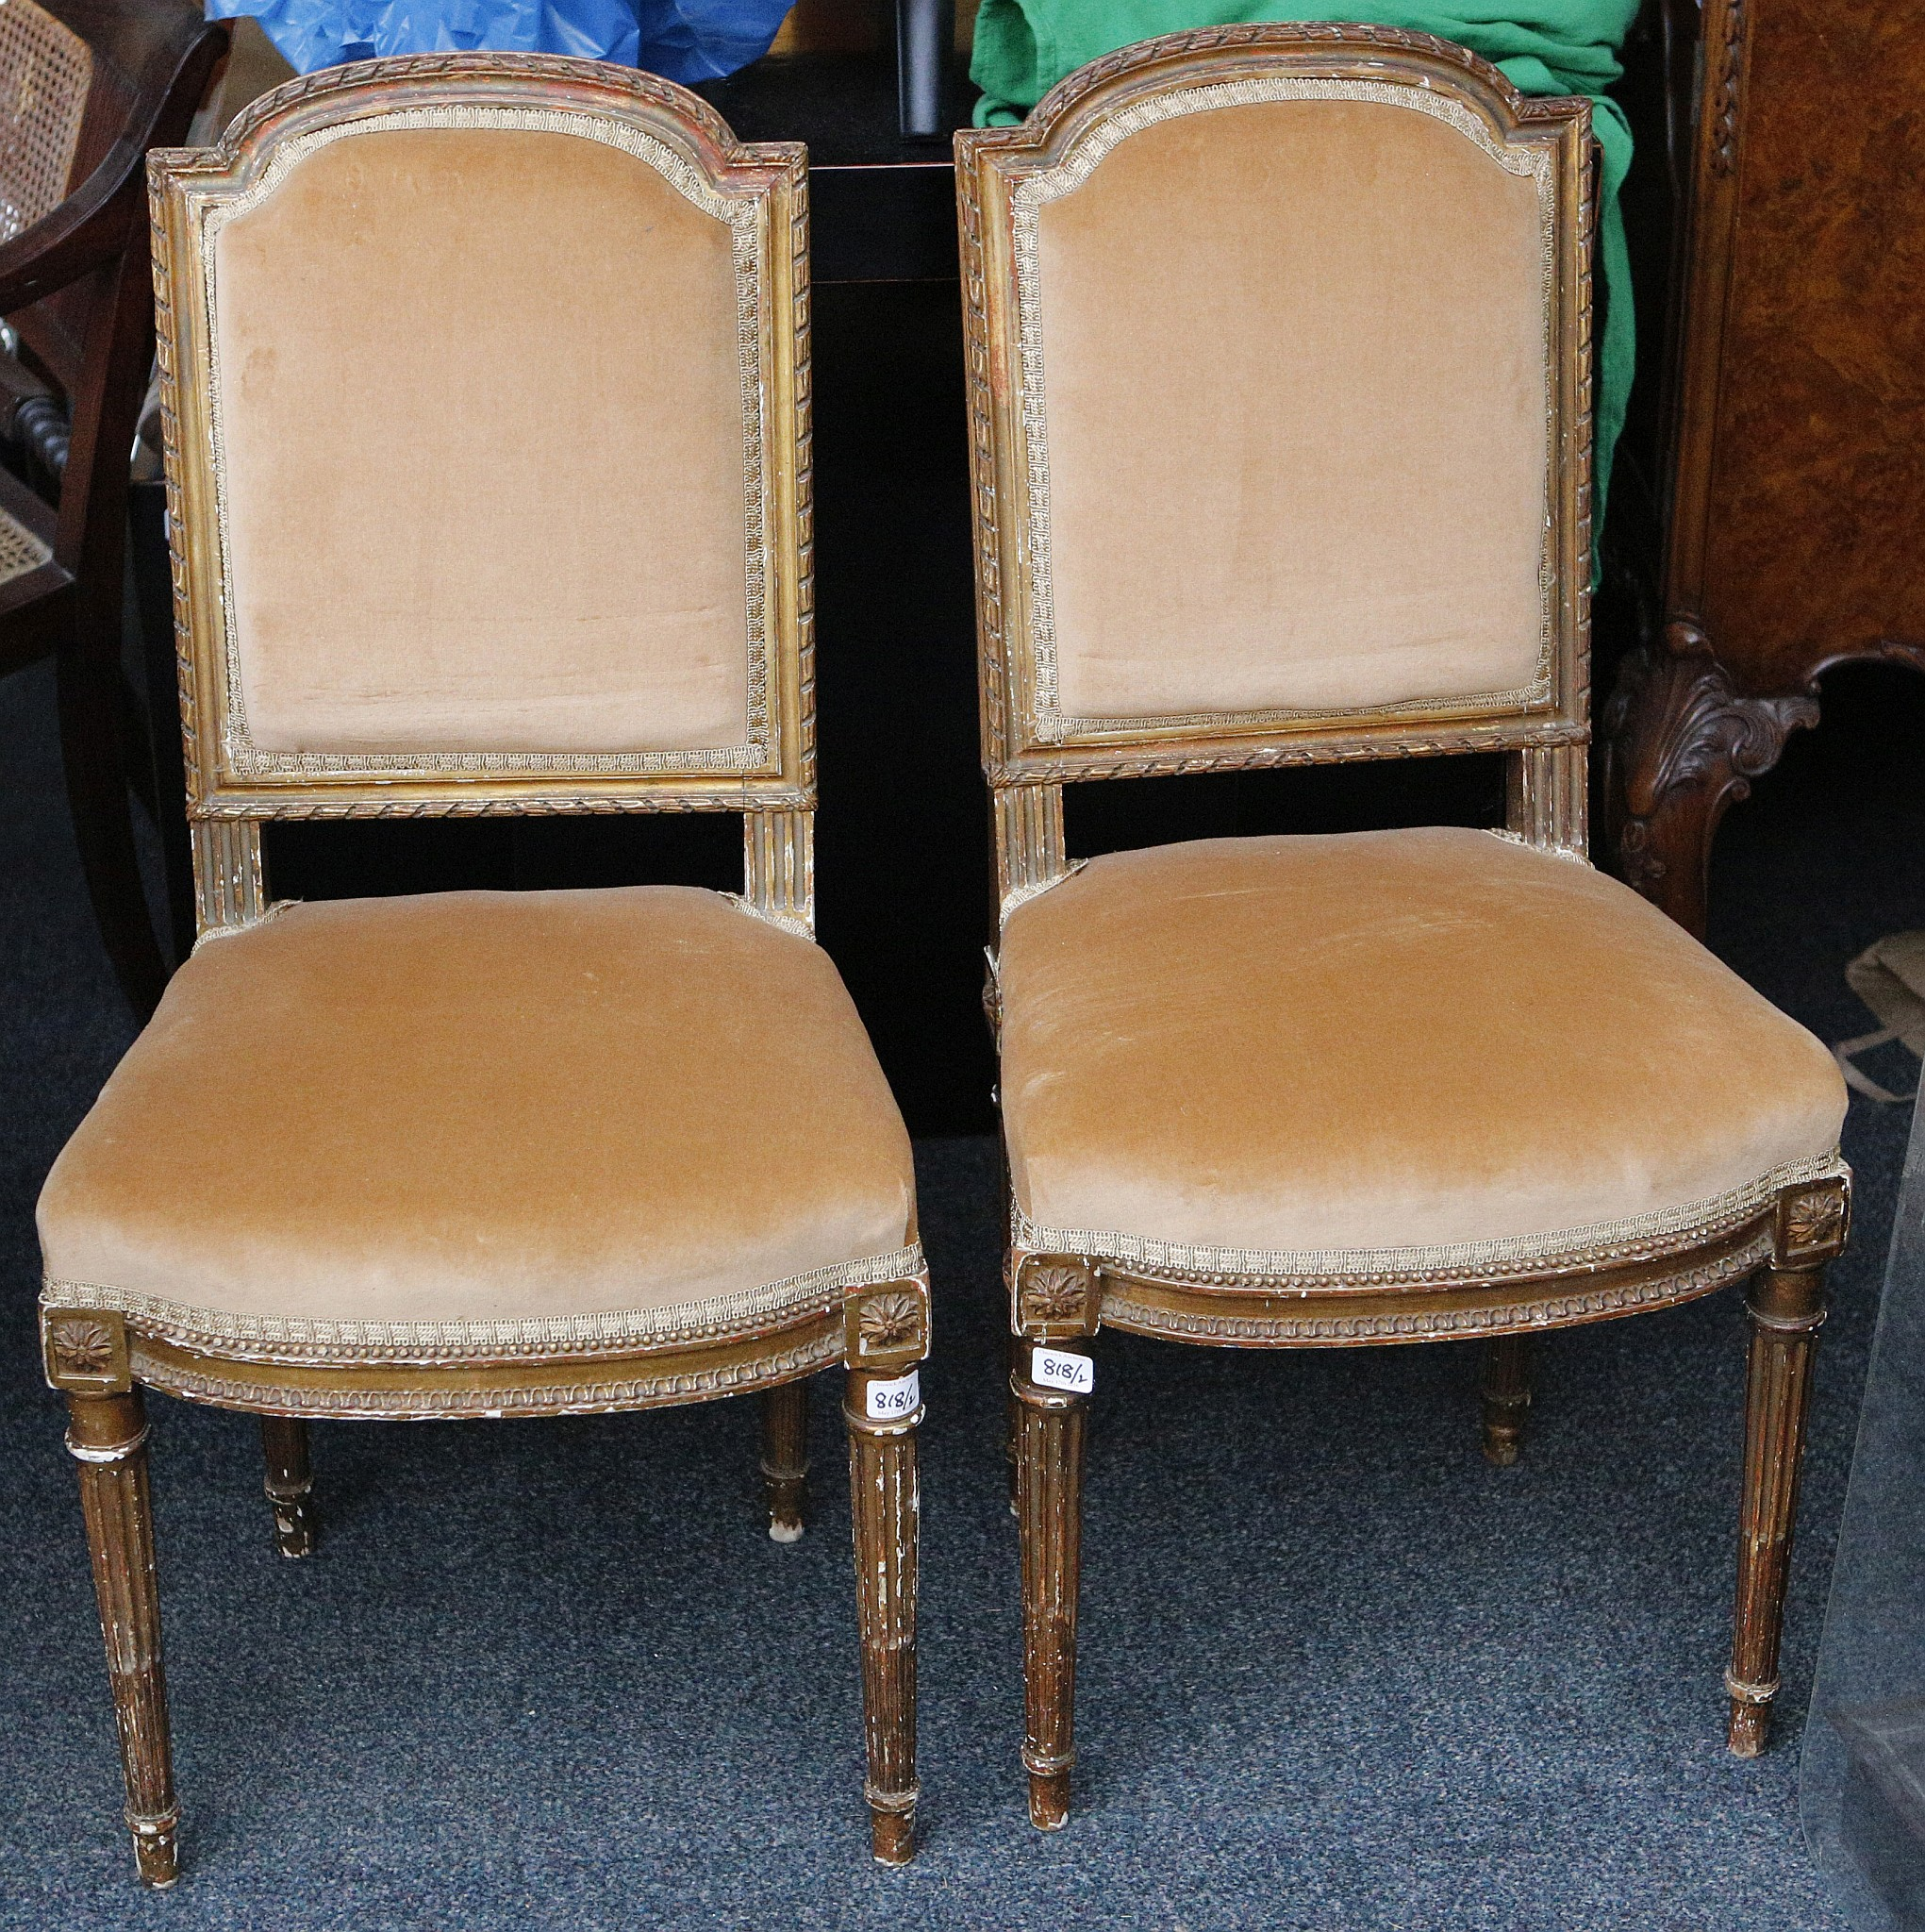 Superieur Lot 818   A Pair Of Gilded Louis XVII Style Side Chairs, Ribbon Twist Border